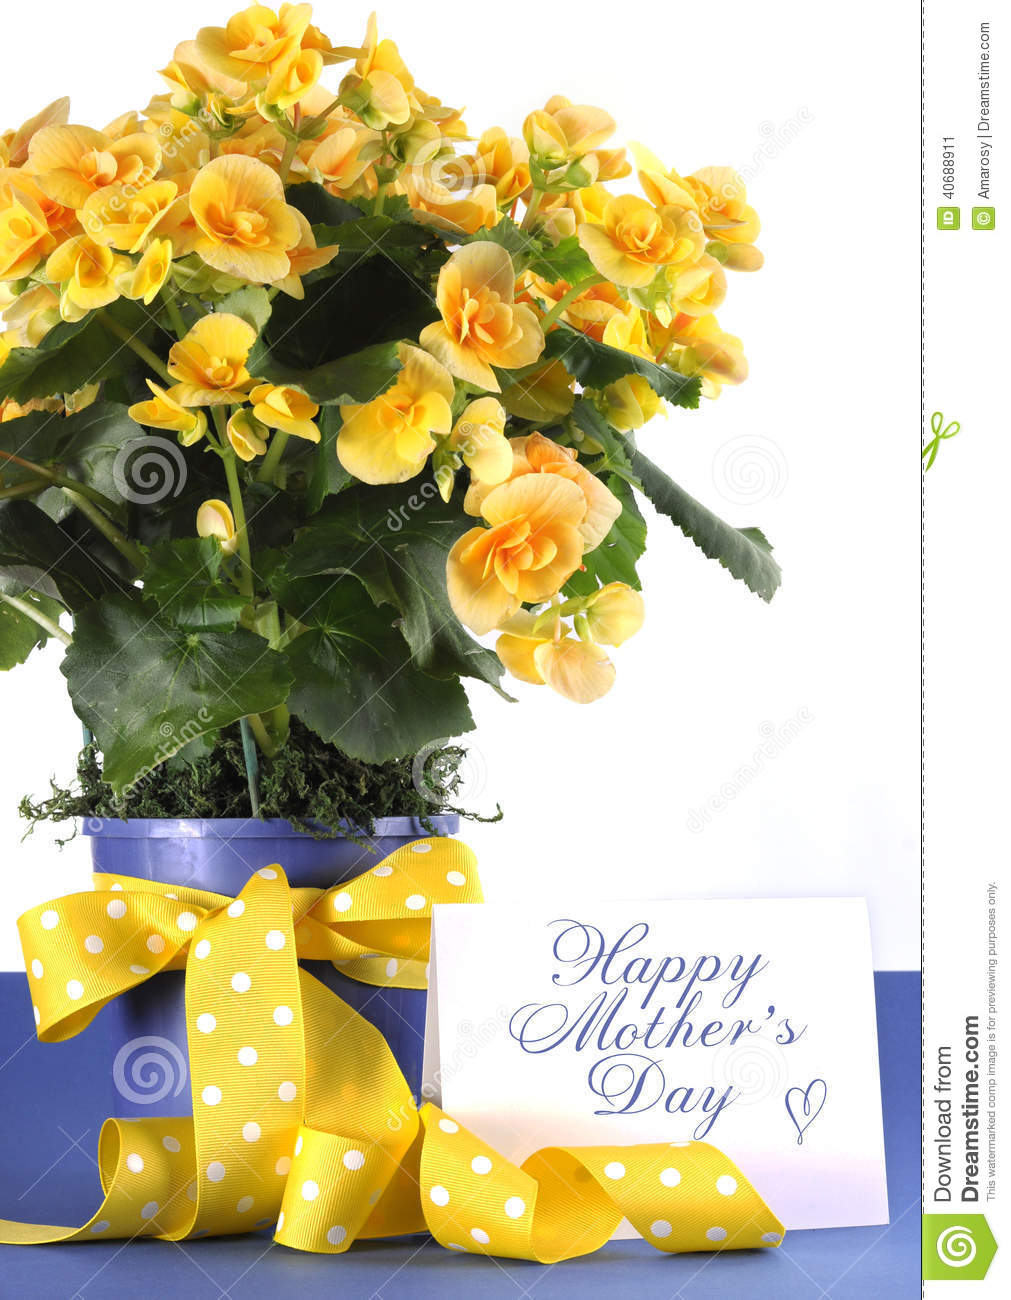 Happy Mothers Day Beautiful Yellow Begonia Potted Plant Gift With